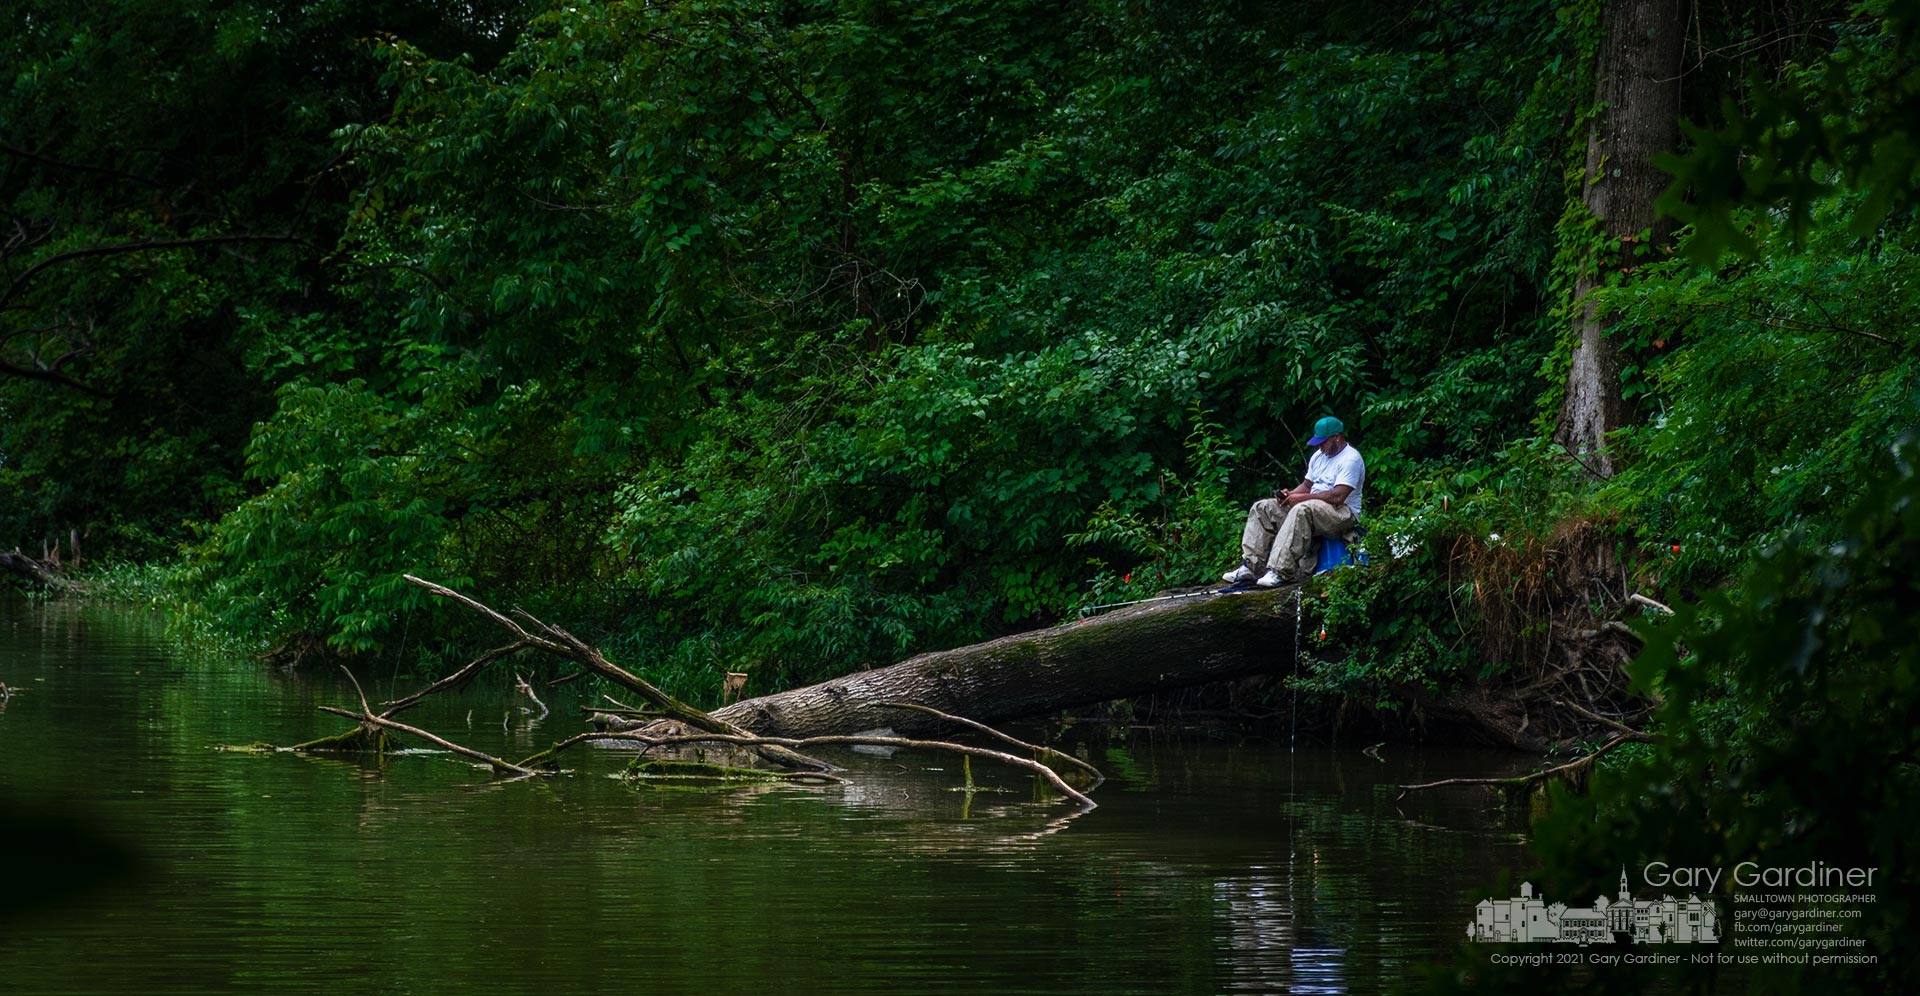 A fisherman resets his bait from his perch on a fallen tree along the shoreline of rain-swollen Hoover Reservoir. My Final Photo for June 30, 2021.